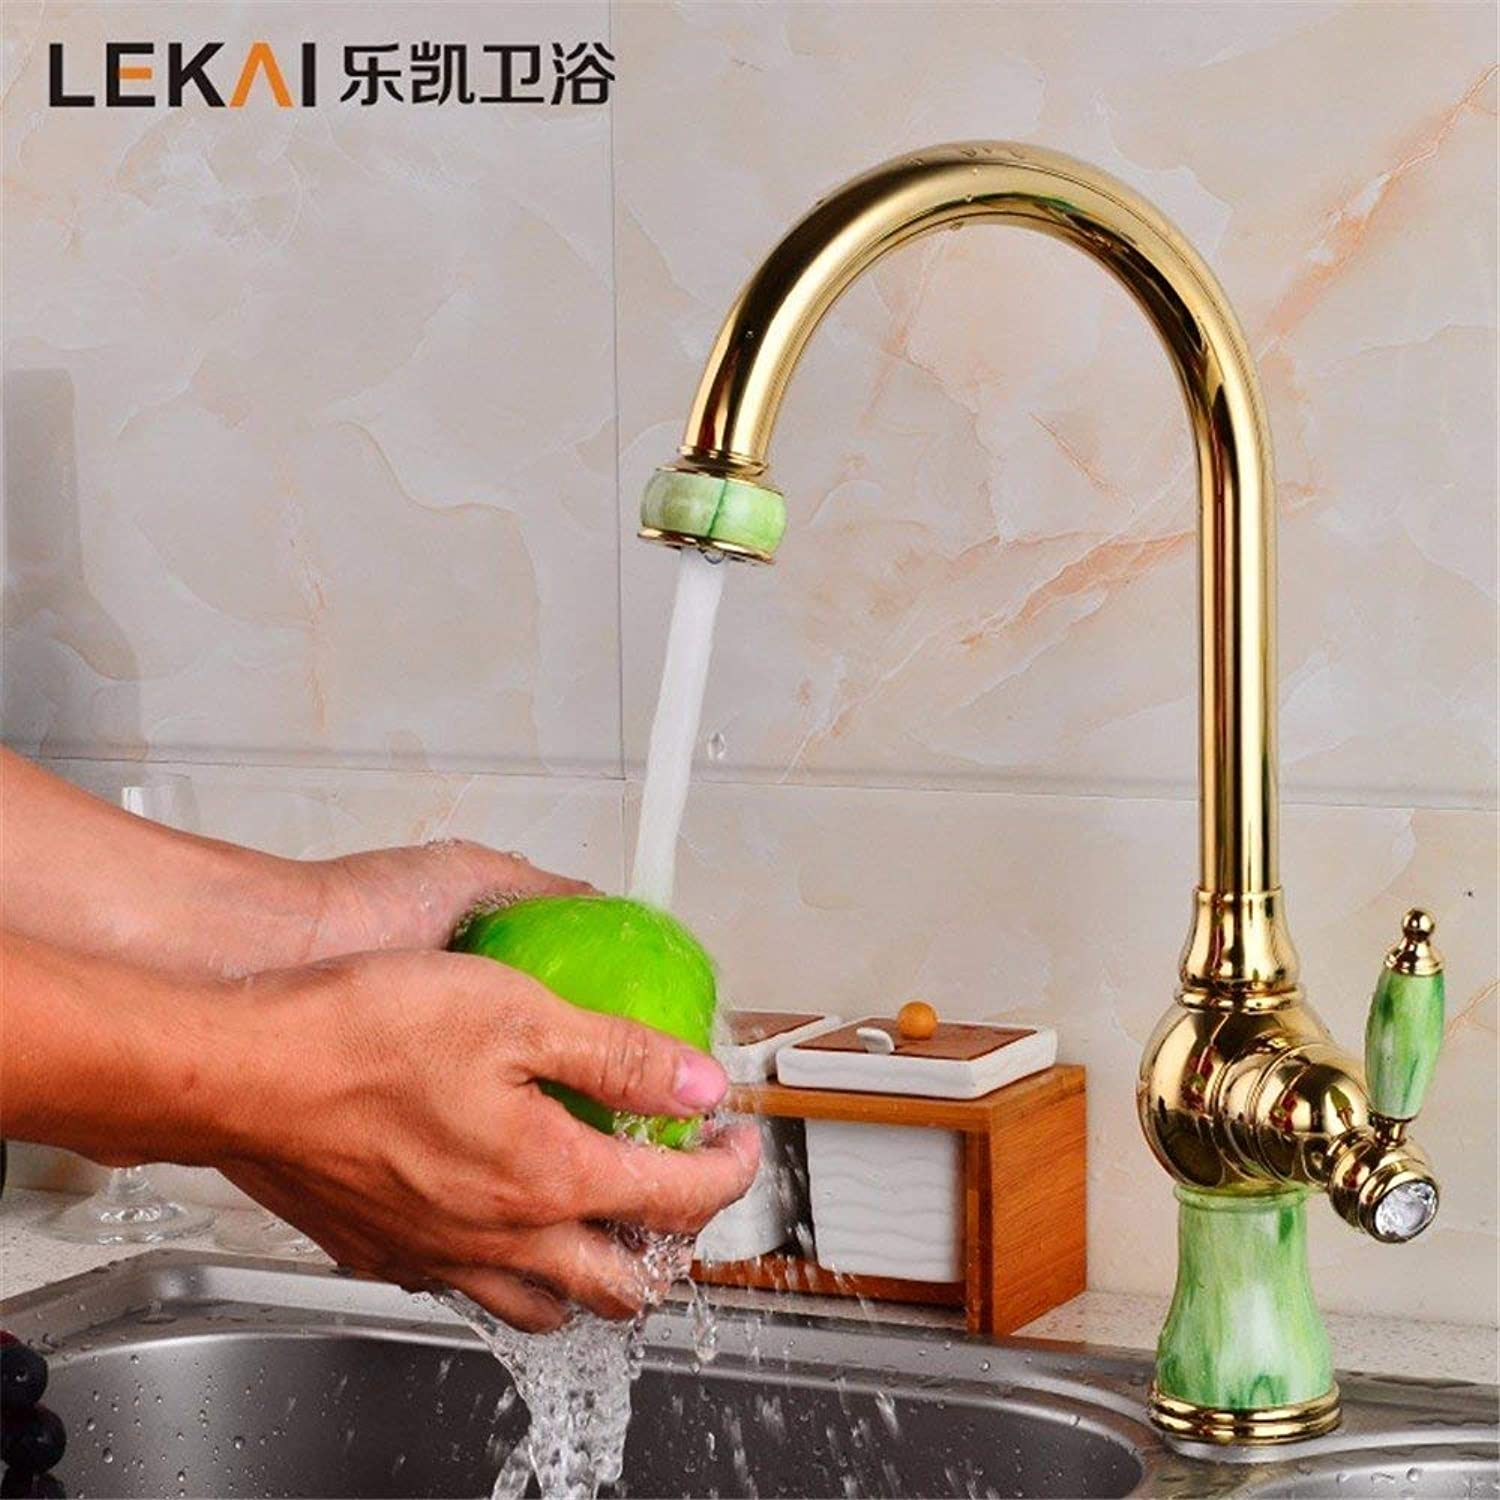 Faucet Simple gold jade stainless steel single hole hot and cold tap greenical basin bathroom kitchen sink (color   -, Size   -)